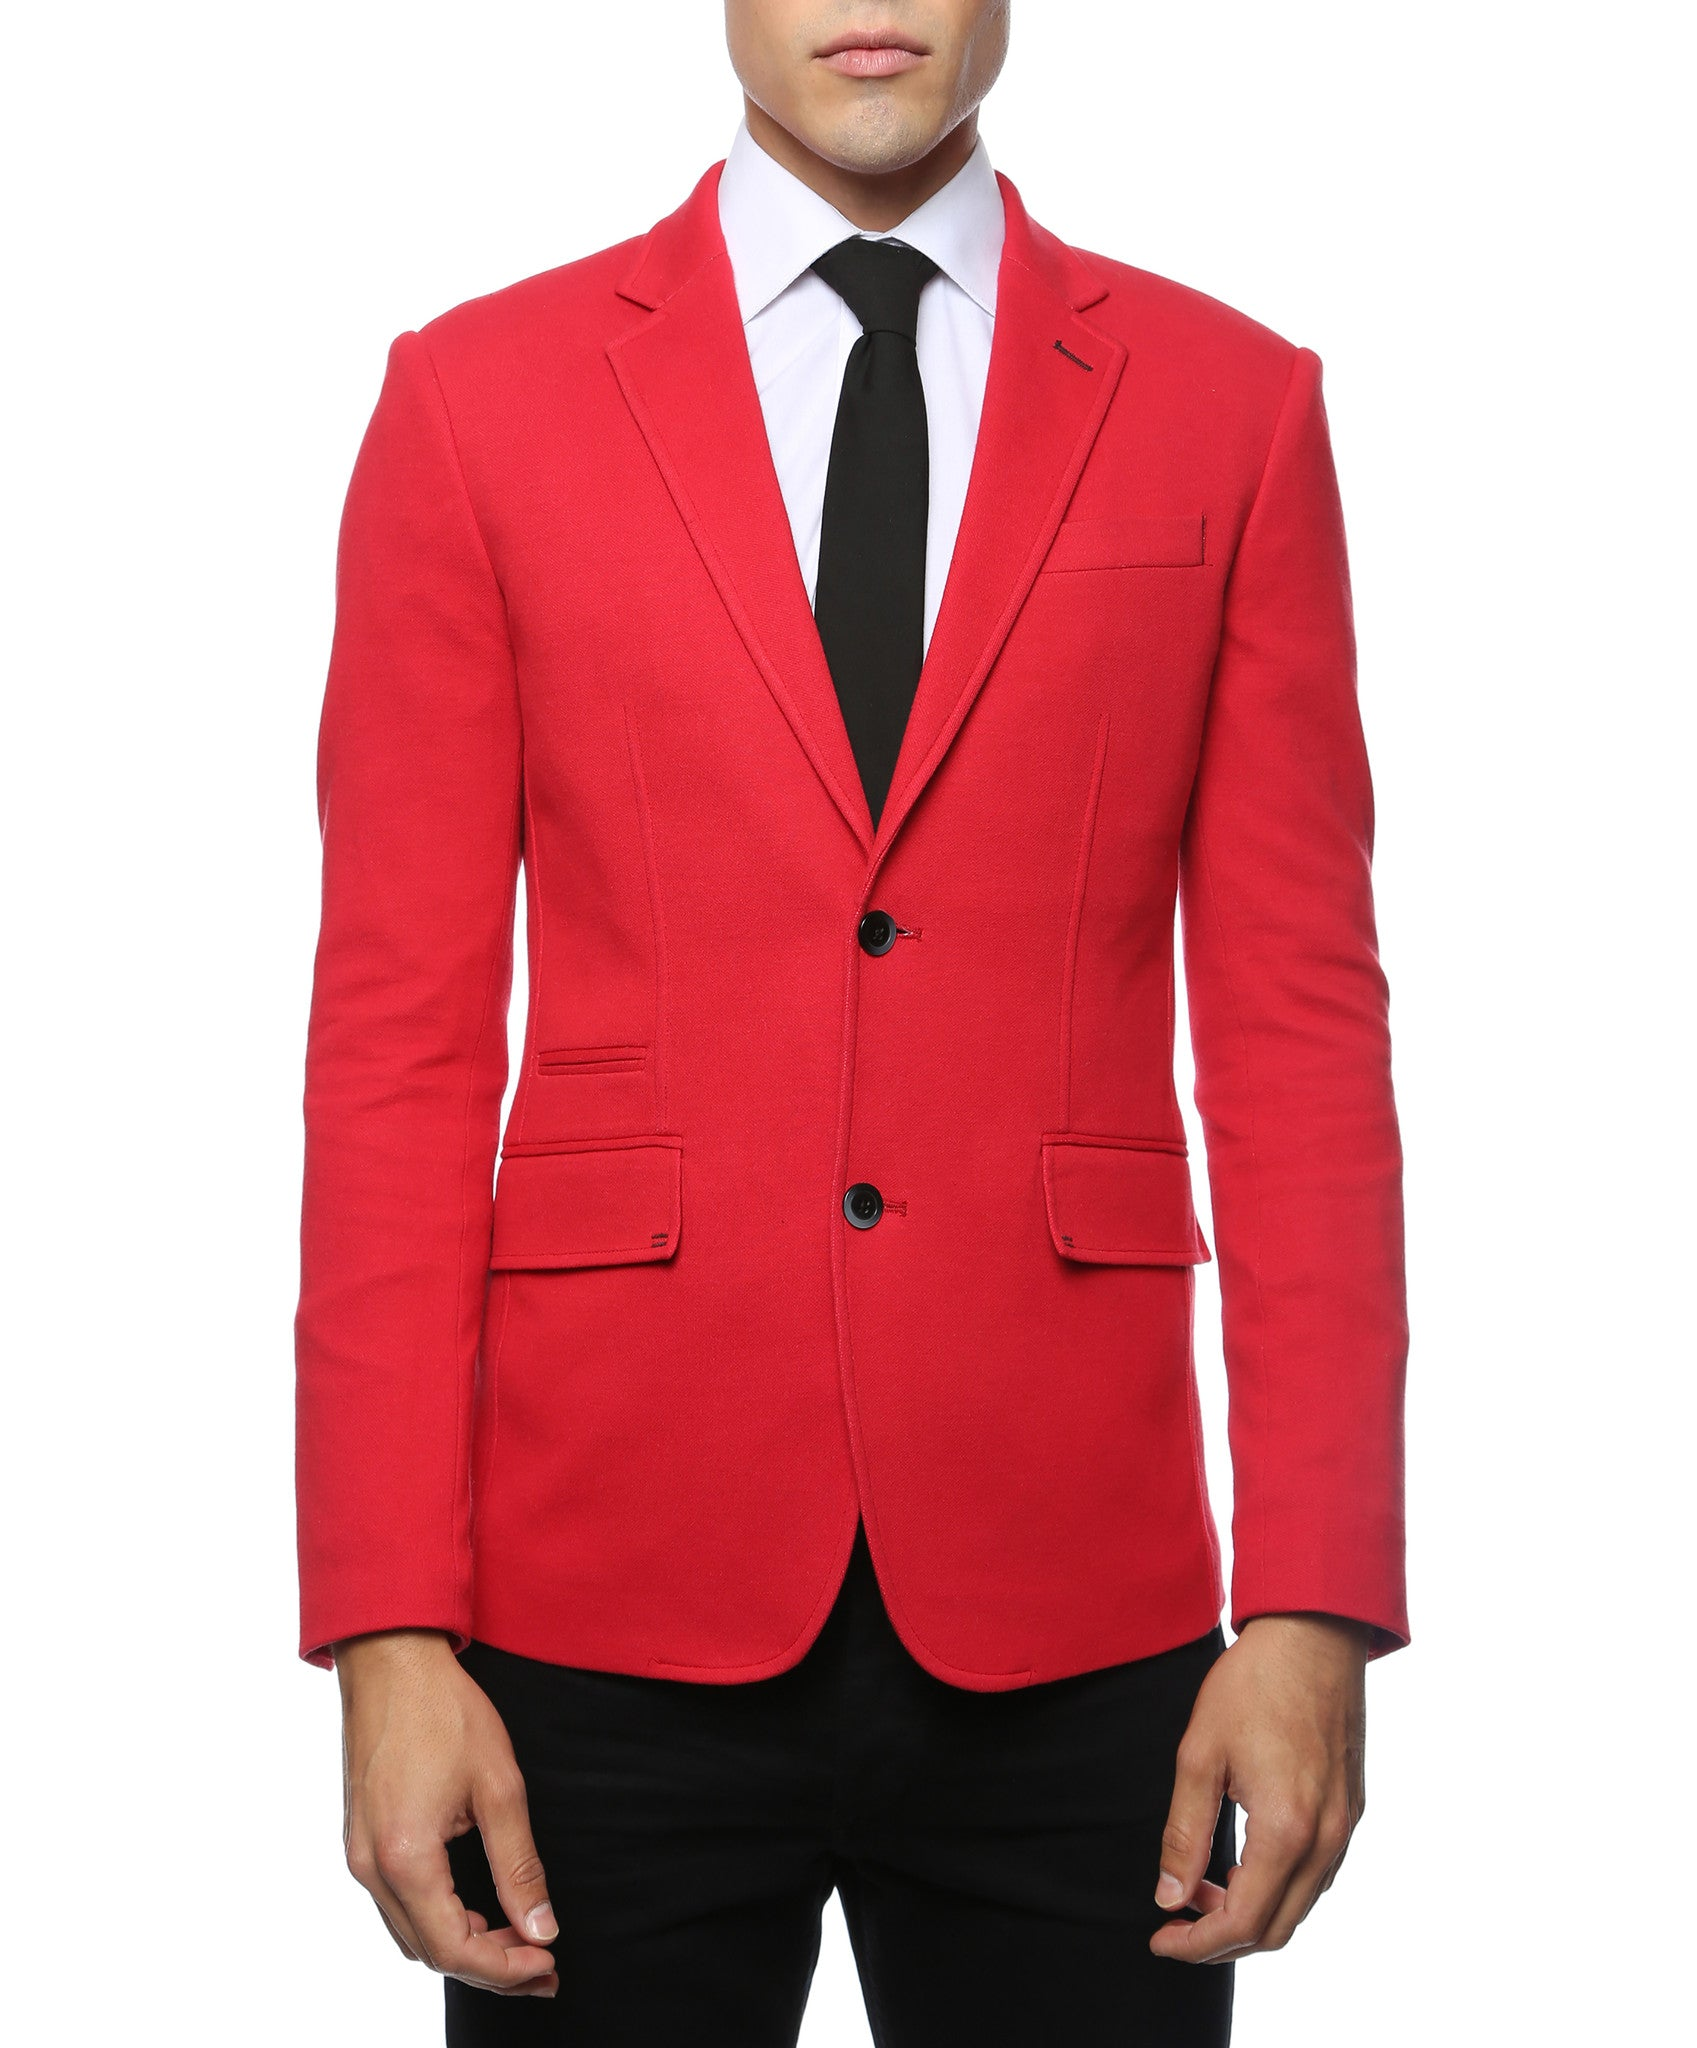 Find red blazer from a vast selection of